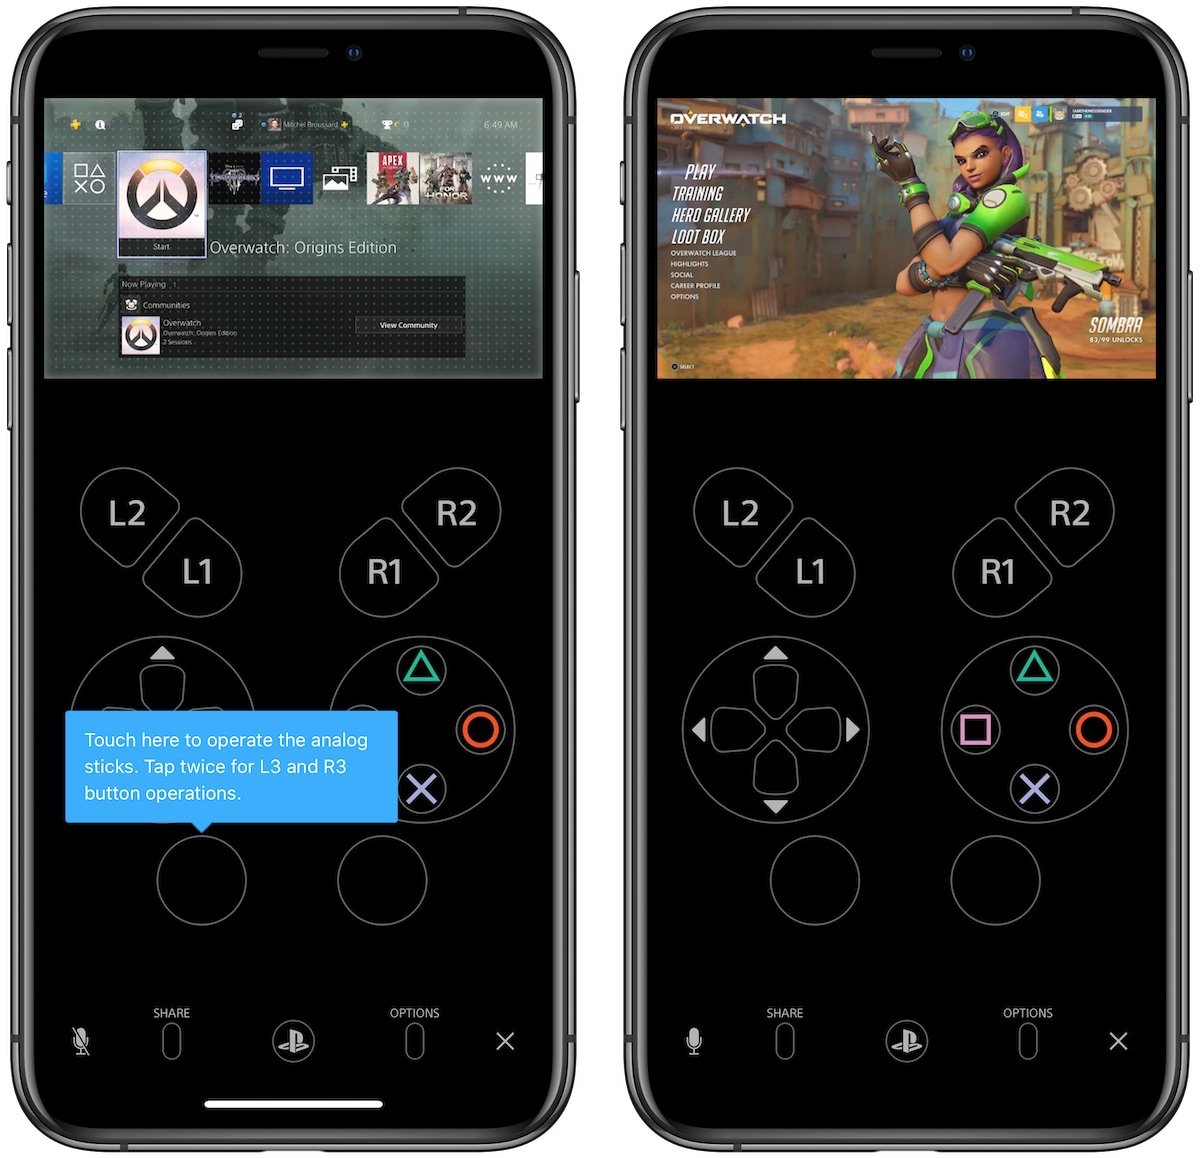 You can now play PS4 games with touch controls on your iPhone